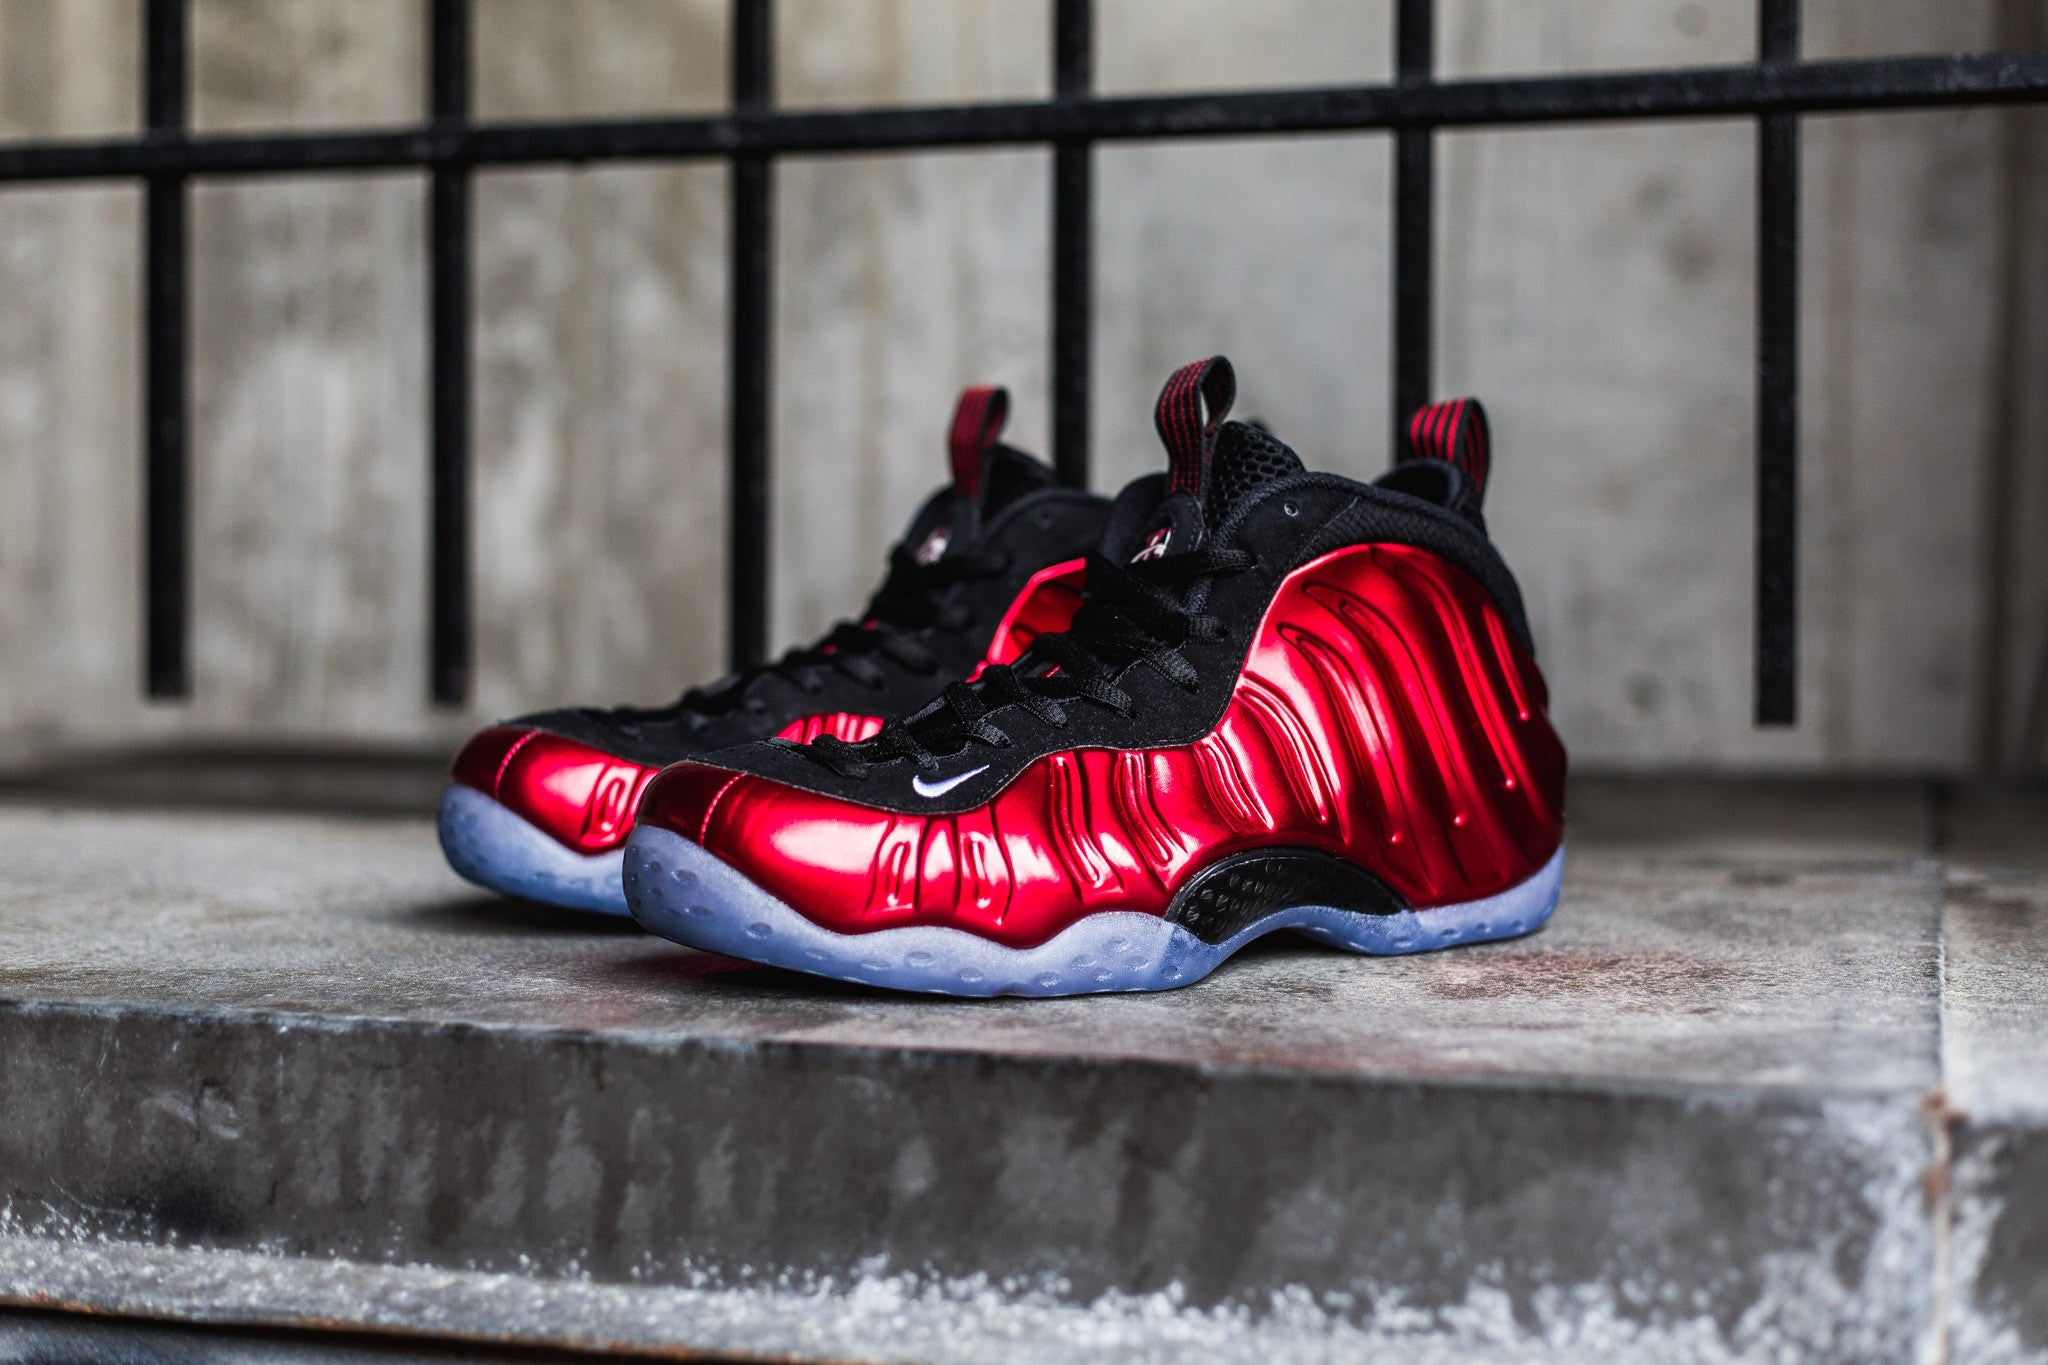 on sale 26ee9 bc9fd ... netherlands nike air foamposite one metallic red 05.26.17 1793a f9008